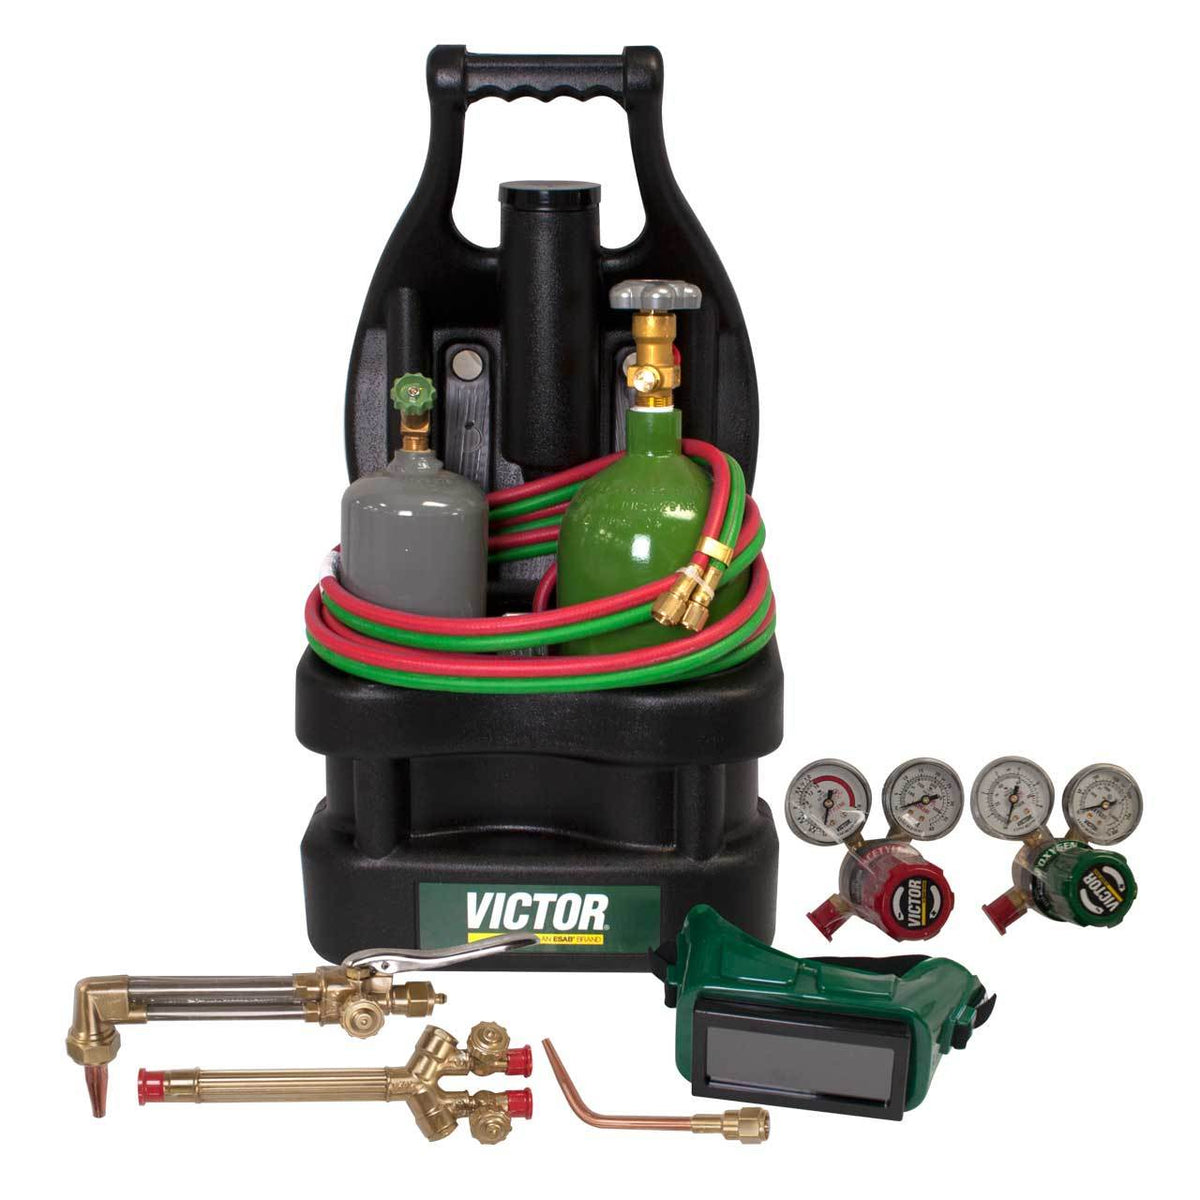 Victor Technologies 0384-0945 Victor G150-J-P Tote Without Tanks